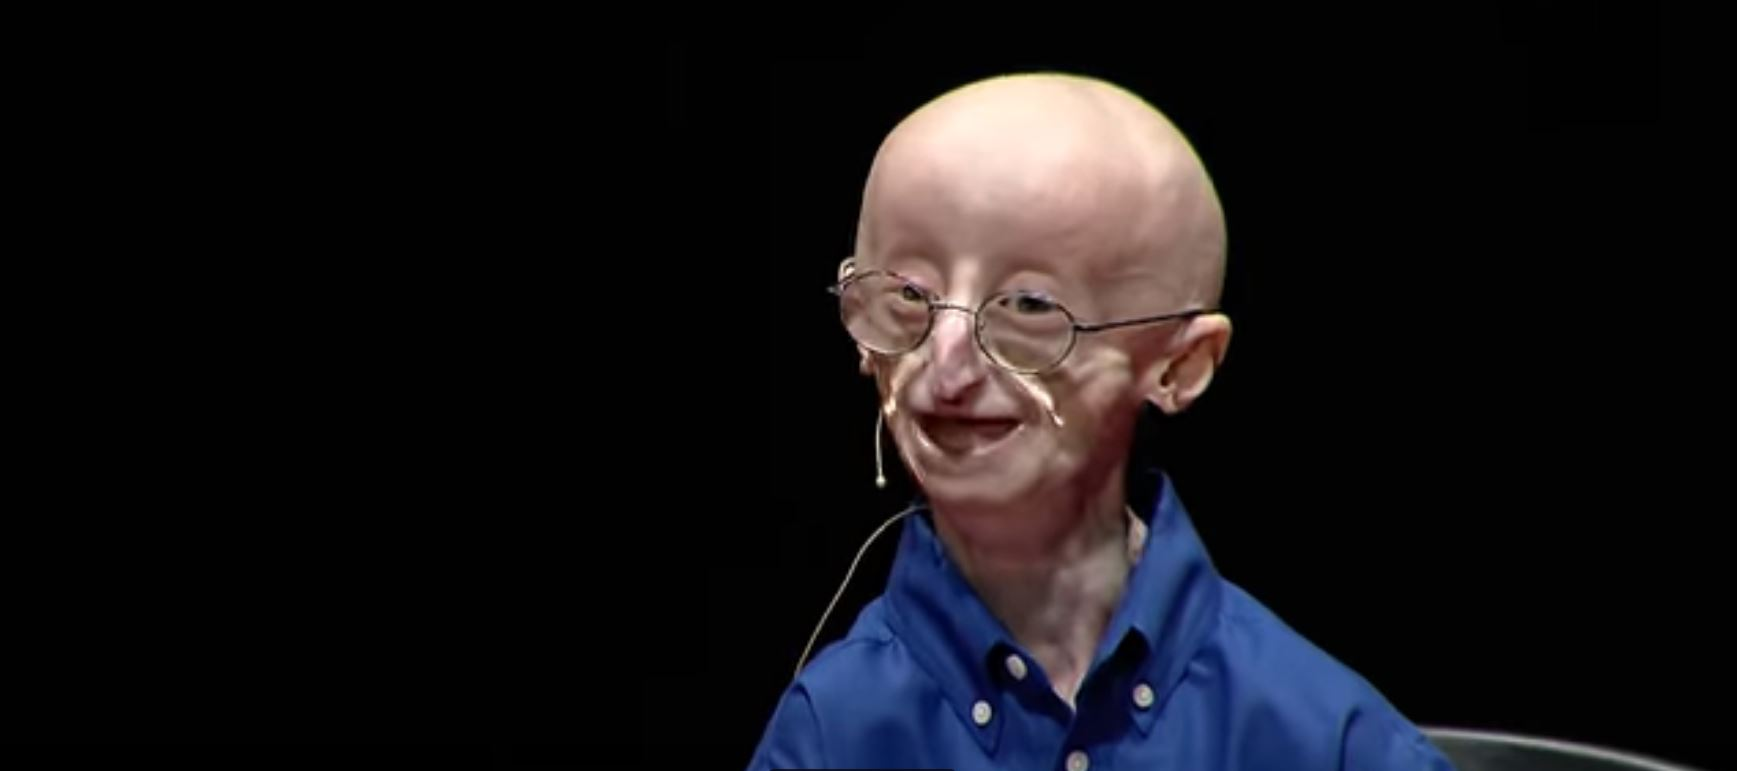 All In Recommends: Sam Berns' Philosophy for a Happy Life - Blog